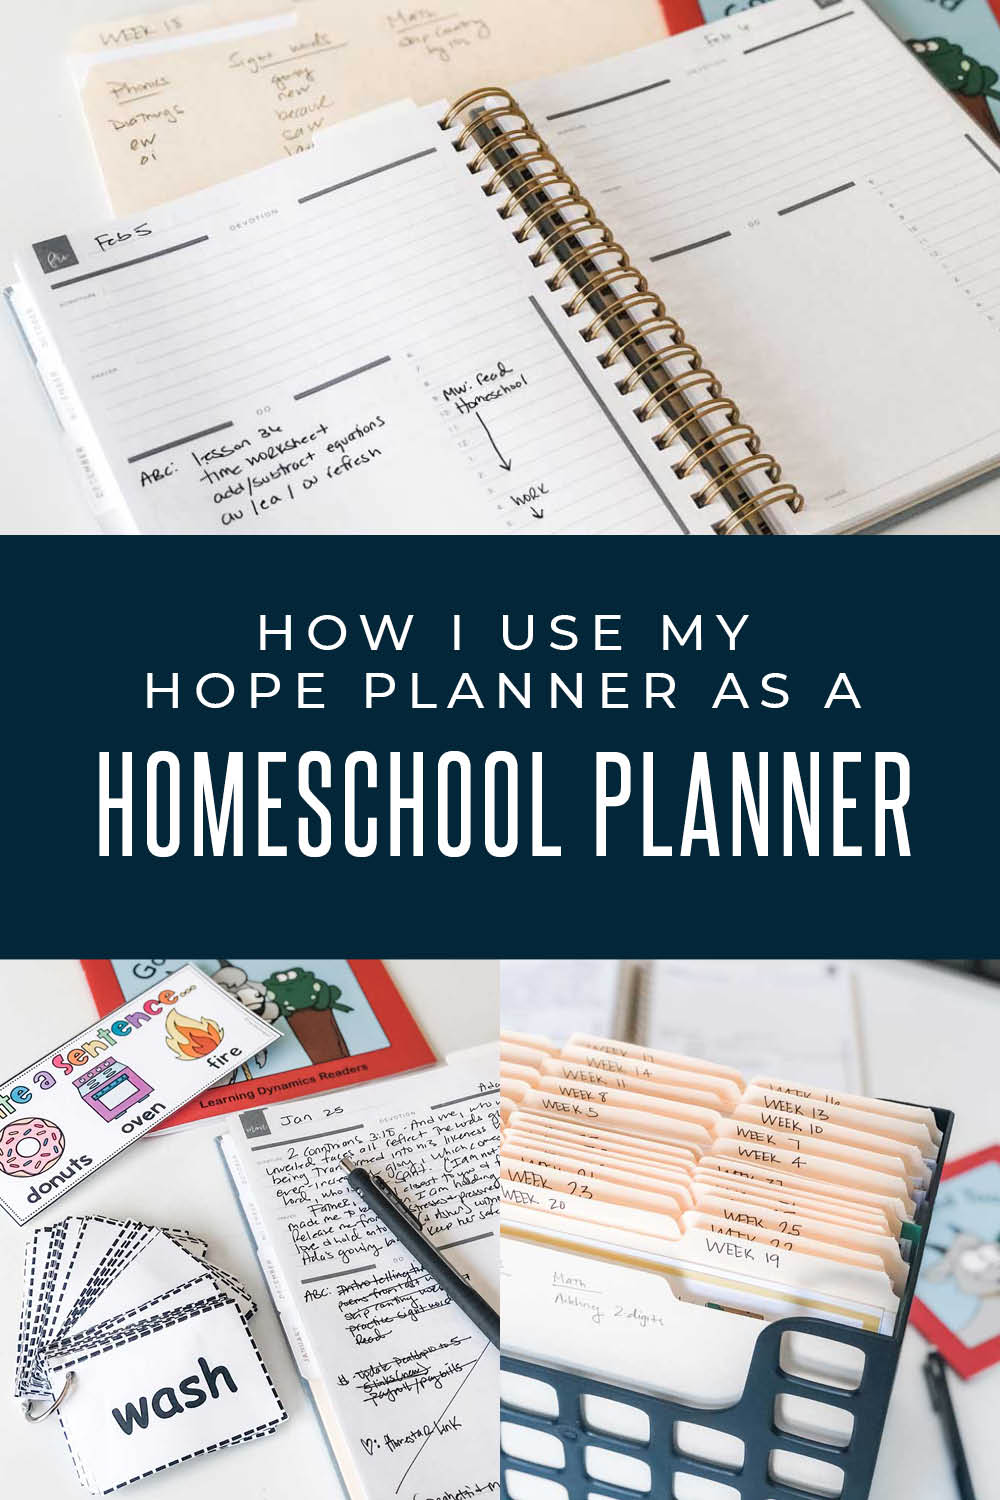 how i use my hope planner as a homeschool planner